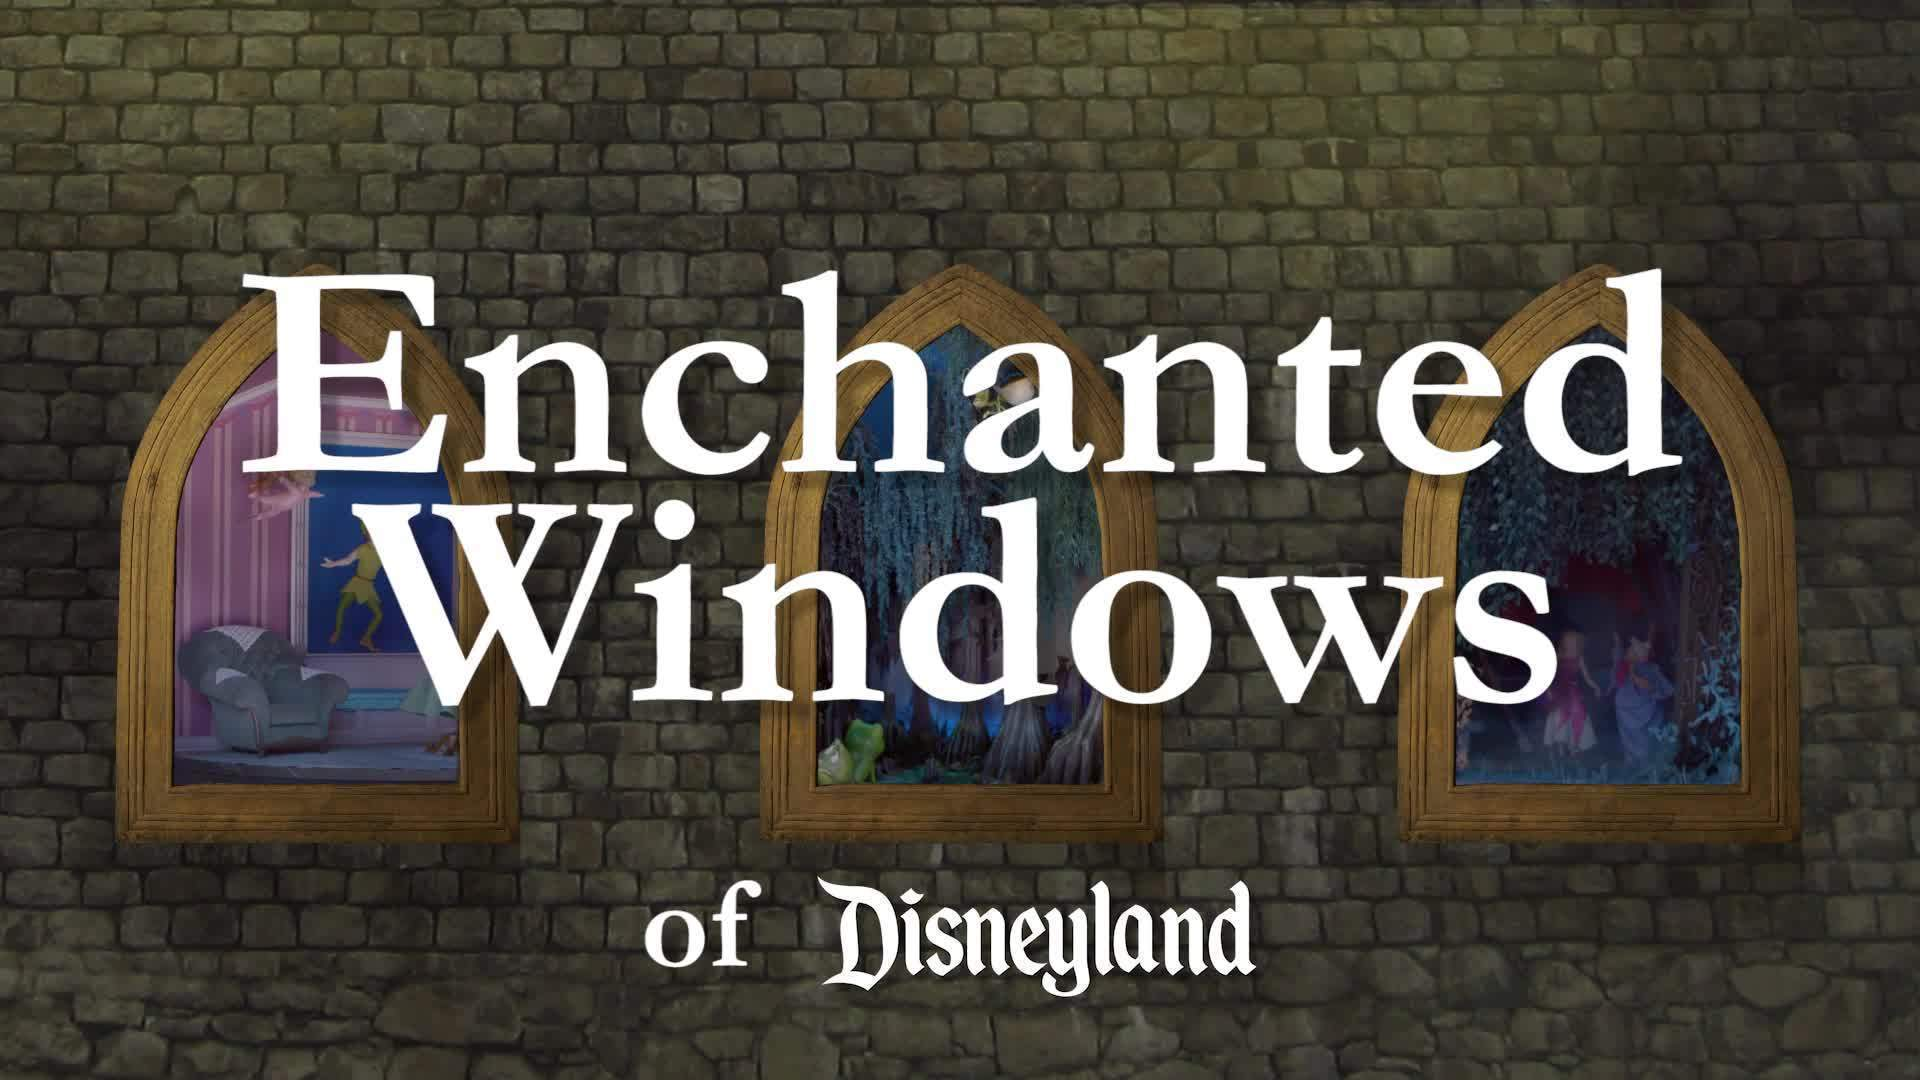 Enchanted Windows: The Princess and the Frog